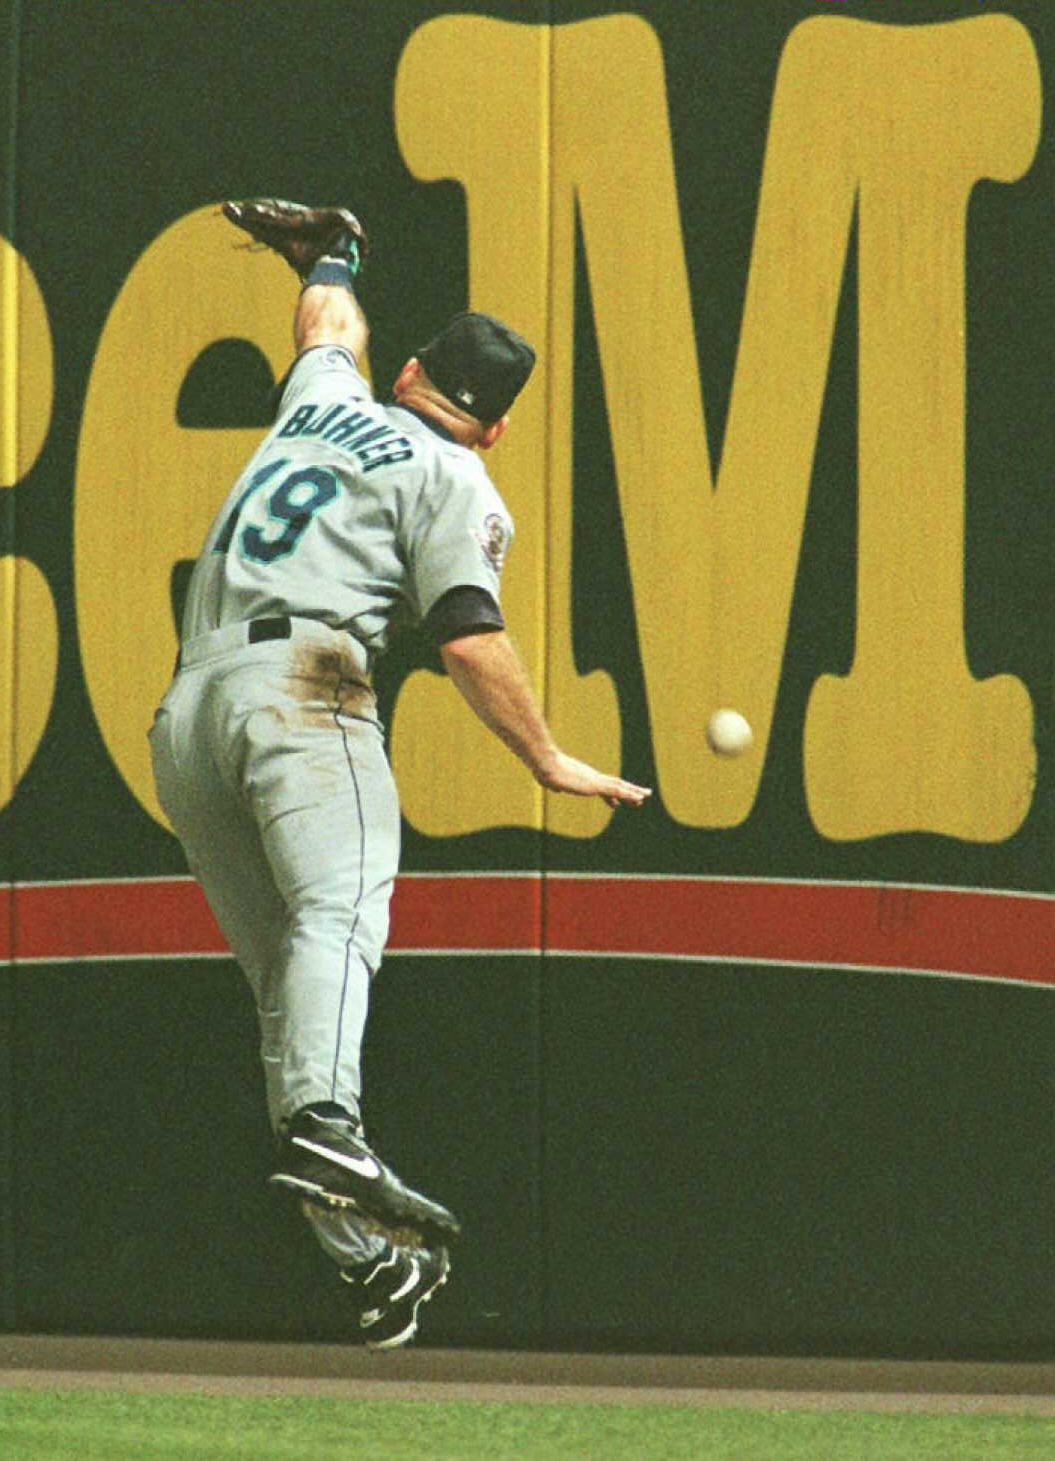 Seattle Mariners right fielder Jay Buhner misplays